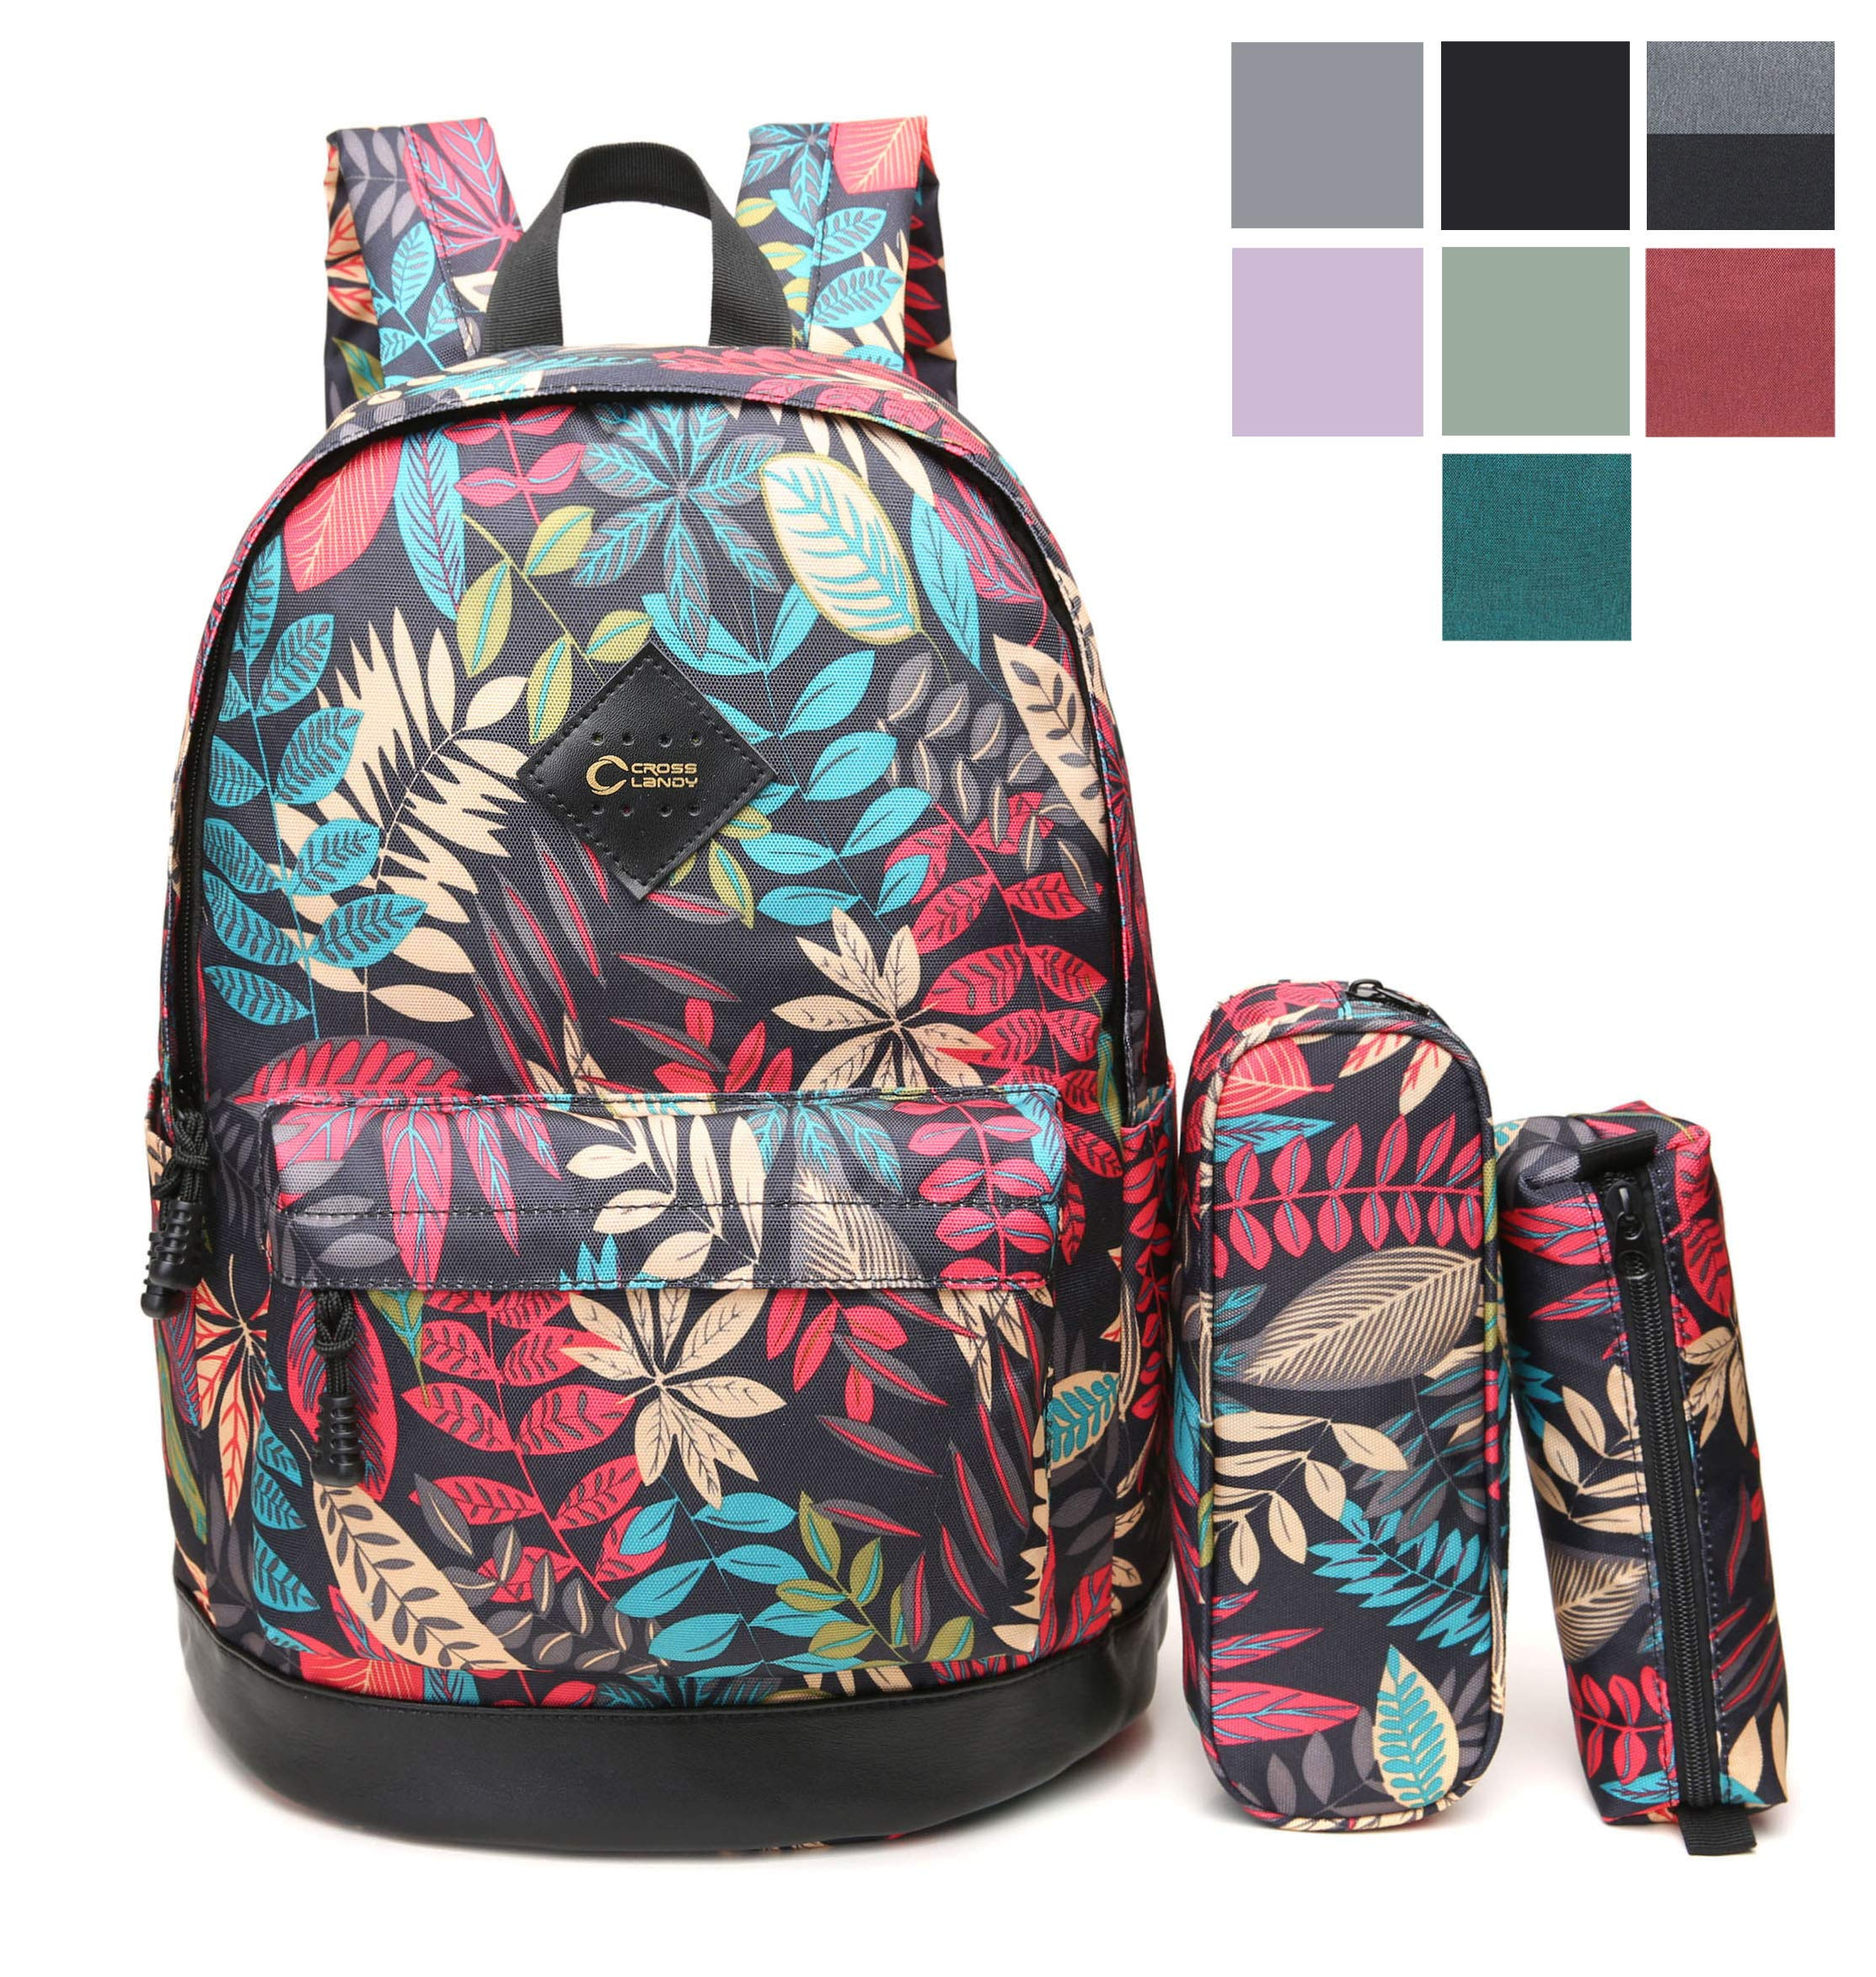 CrossLandy High School Bookbag Floral Print School Backpack Fits 15'' Laptop